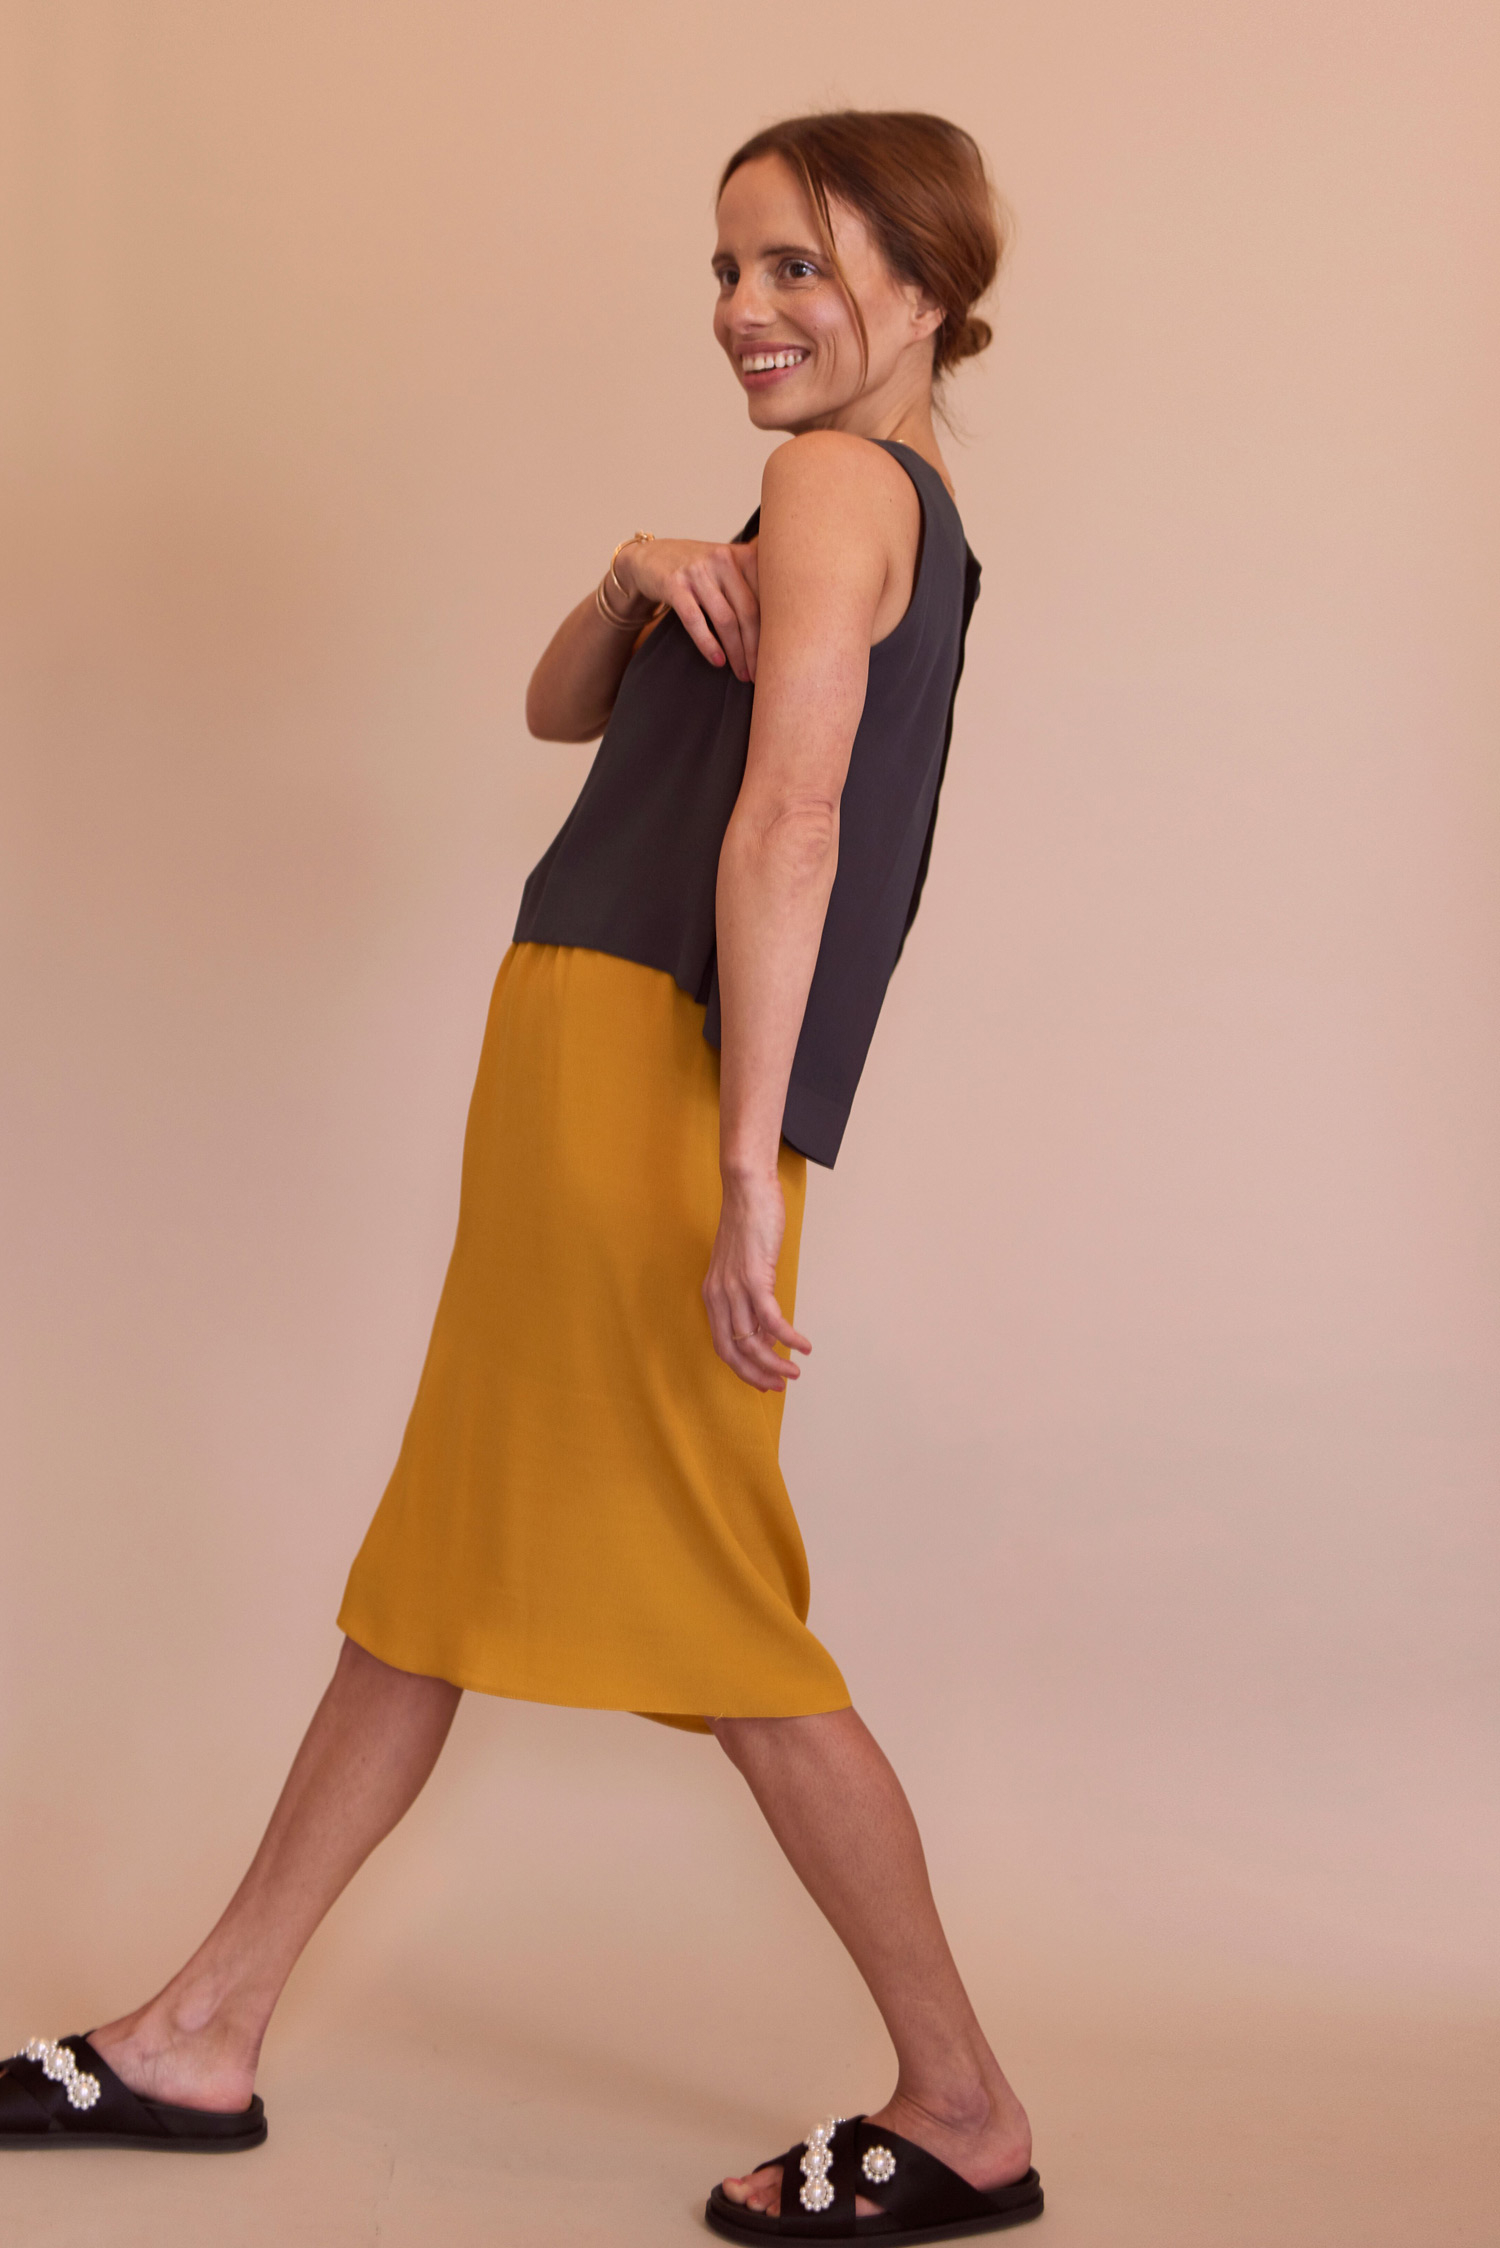 Rosa Macher Sleeveless Top 001 in Charcoal and Skirt 001 in Mustard